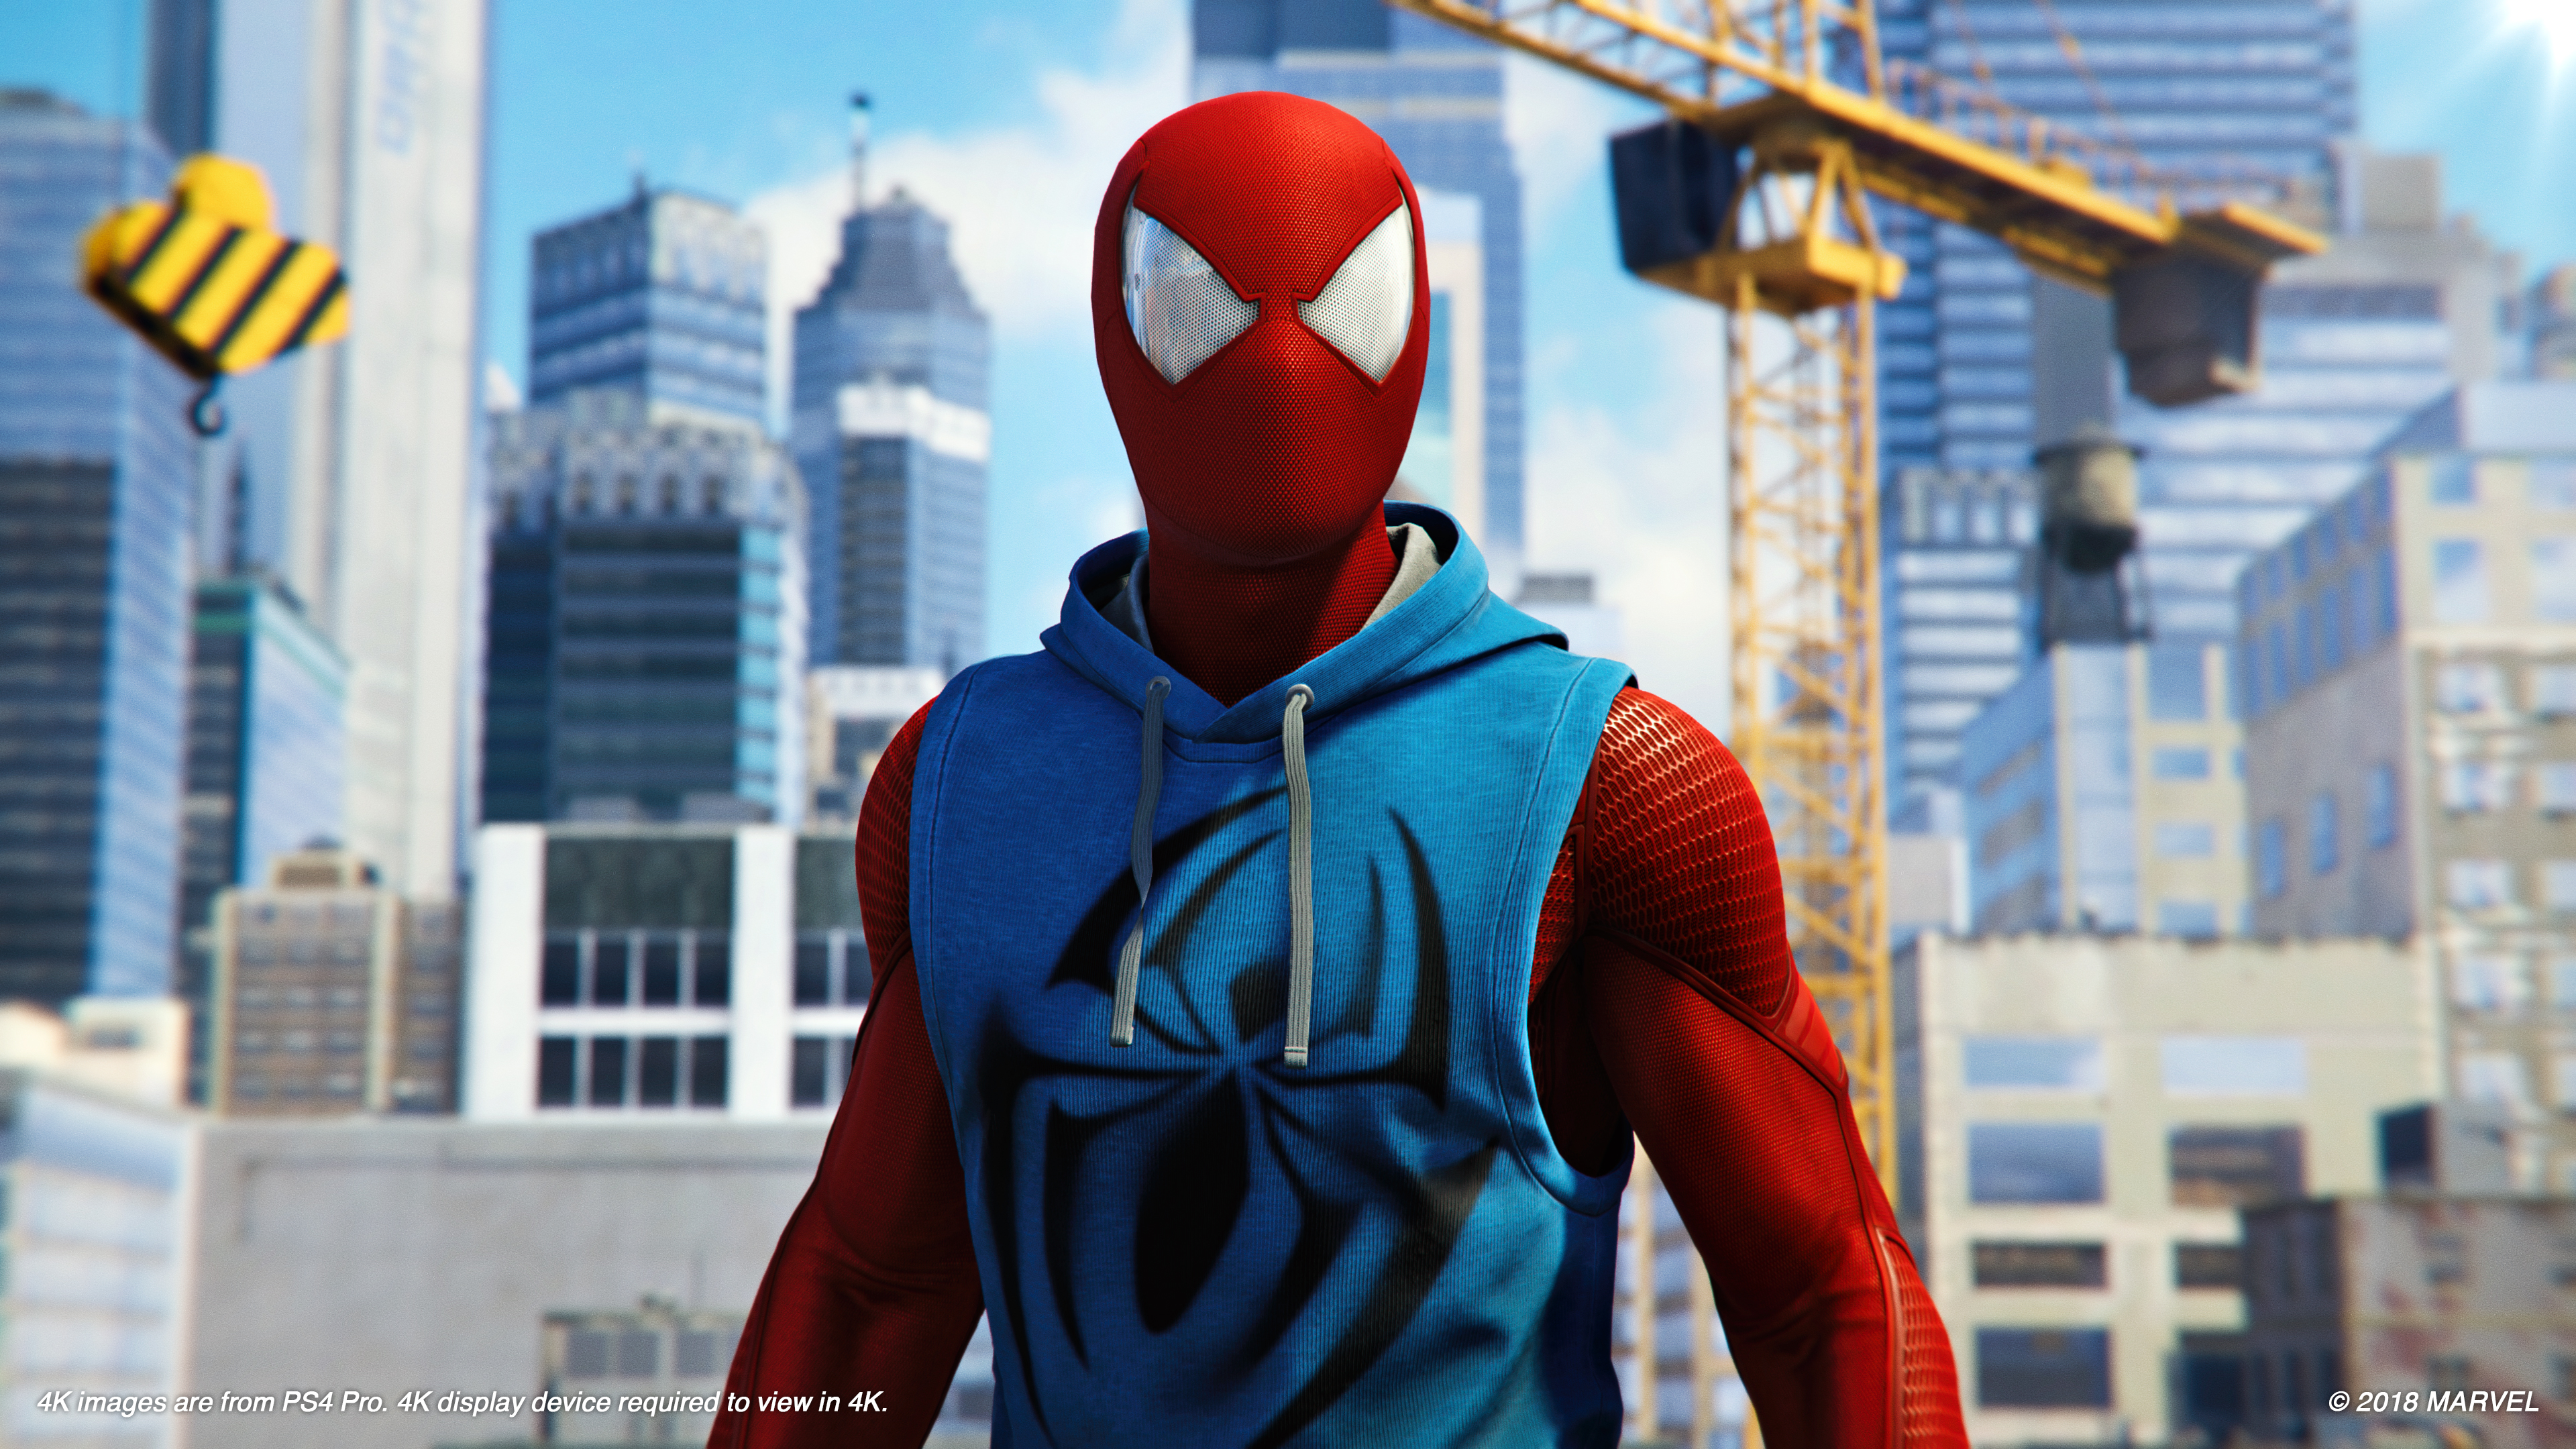 New game plus mode will be swinging over to Spider-Man in the future screenshot